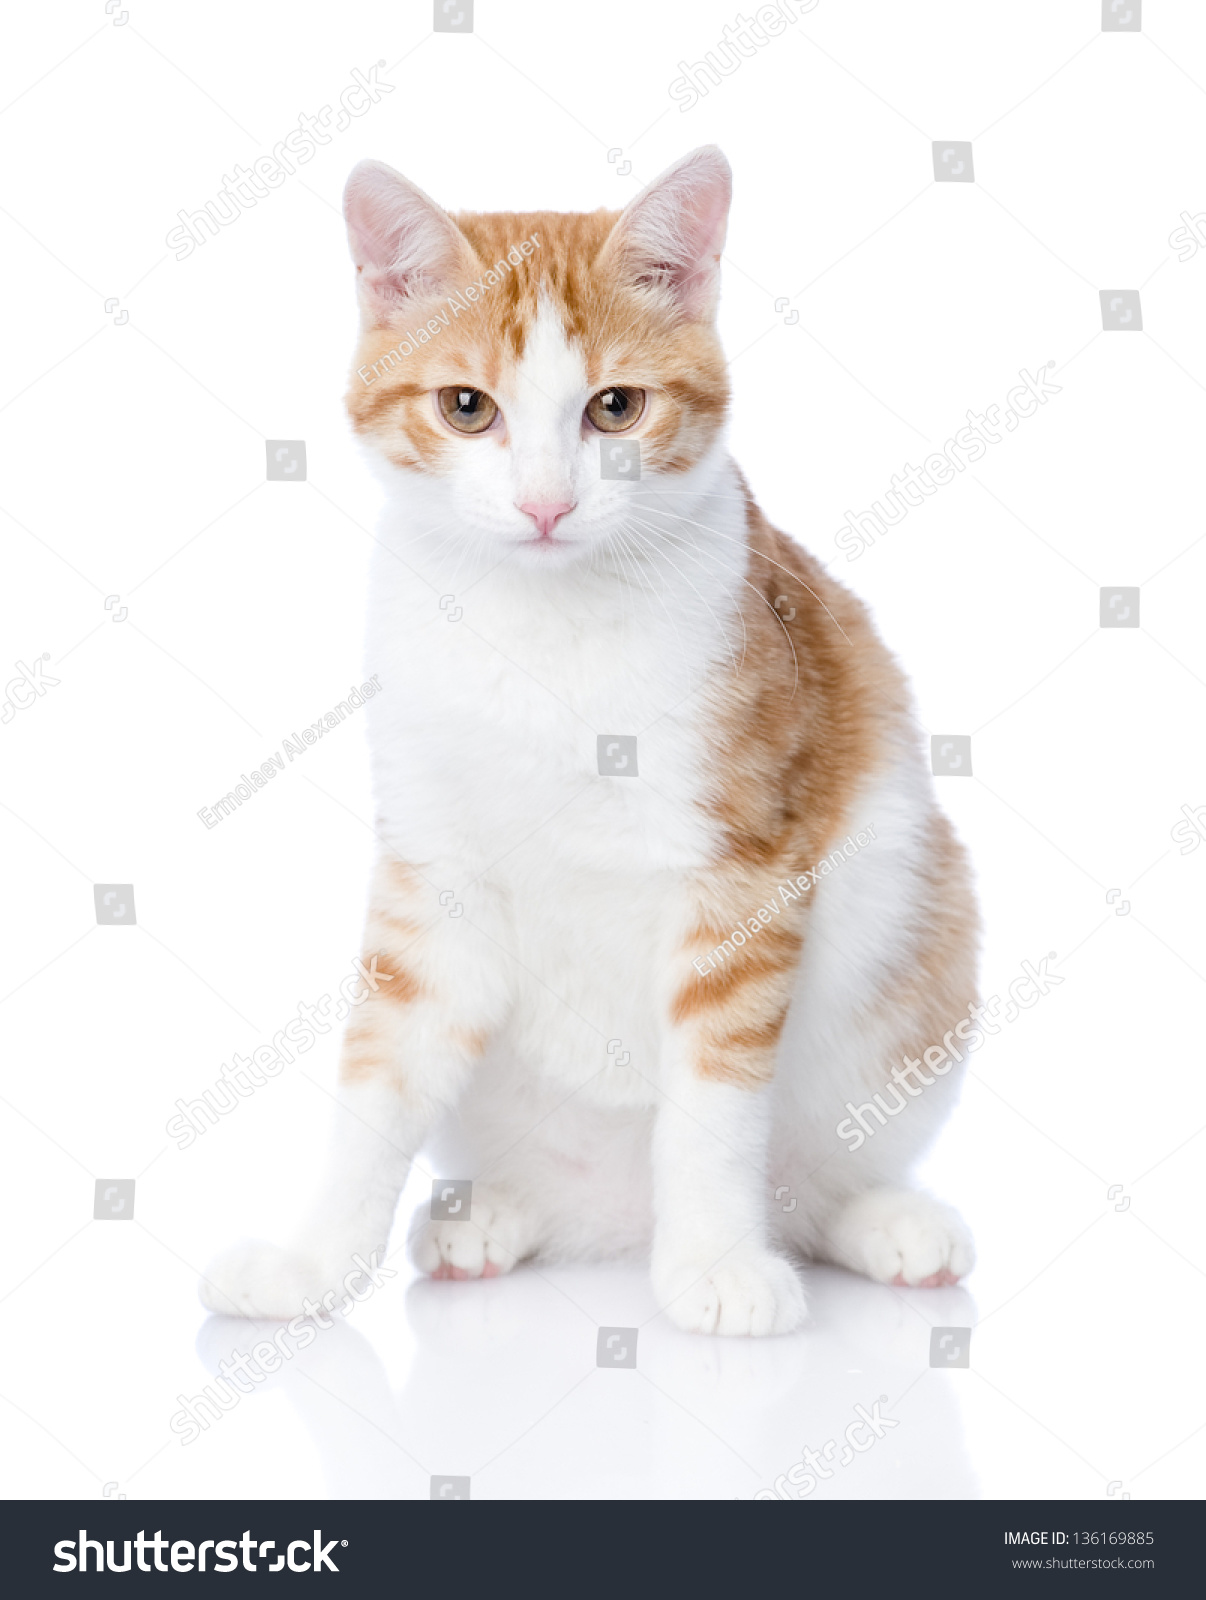 closeup orange cat looking at camera. isolated on white background ...